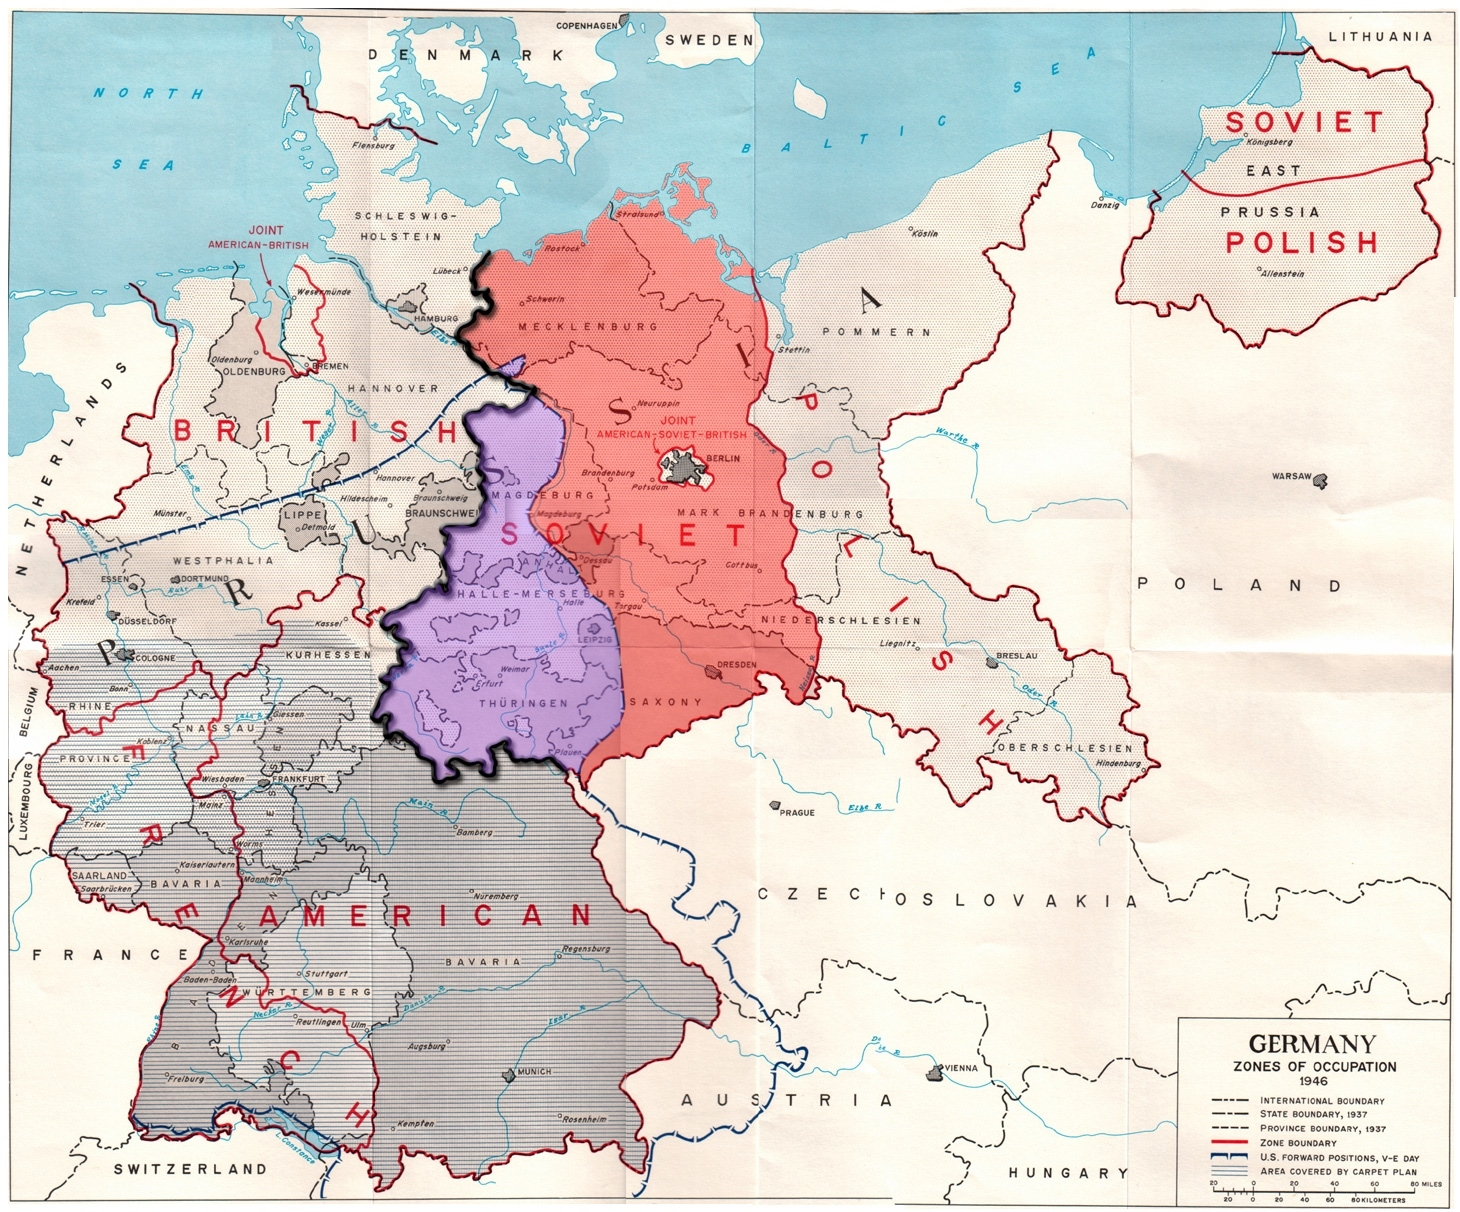 Who Divided Germany During The Cold War - Washington Or Moscow? regarding Cold War Germany Map